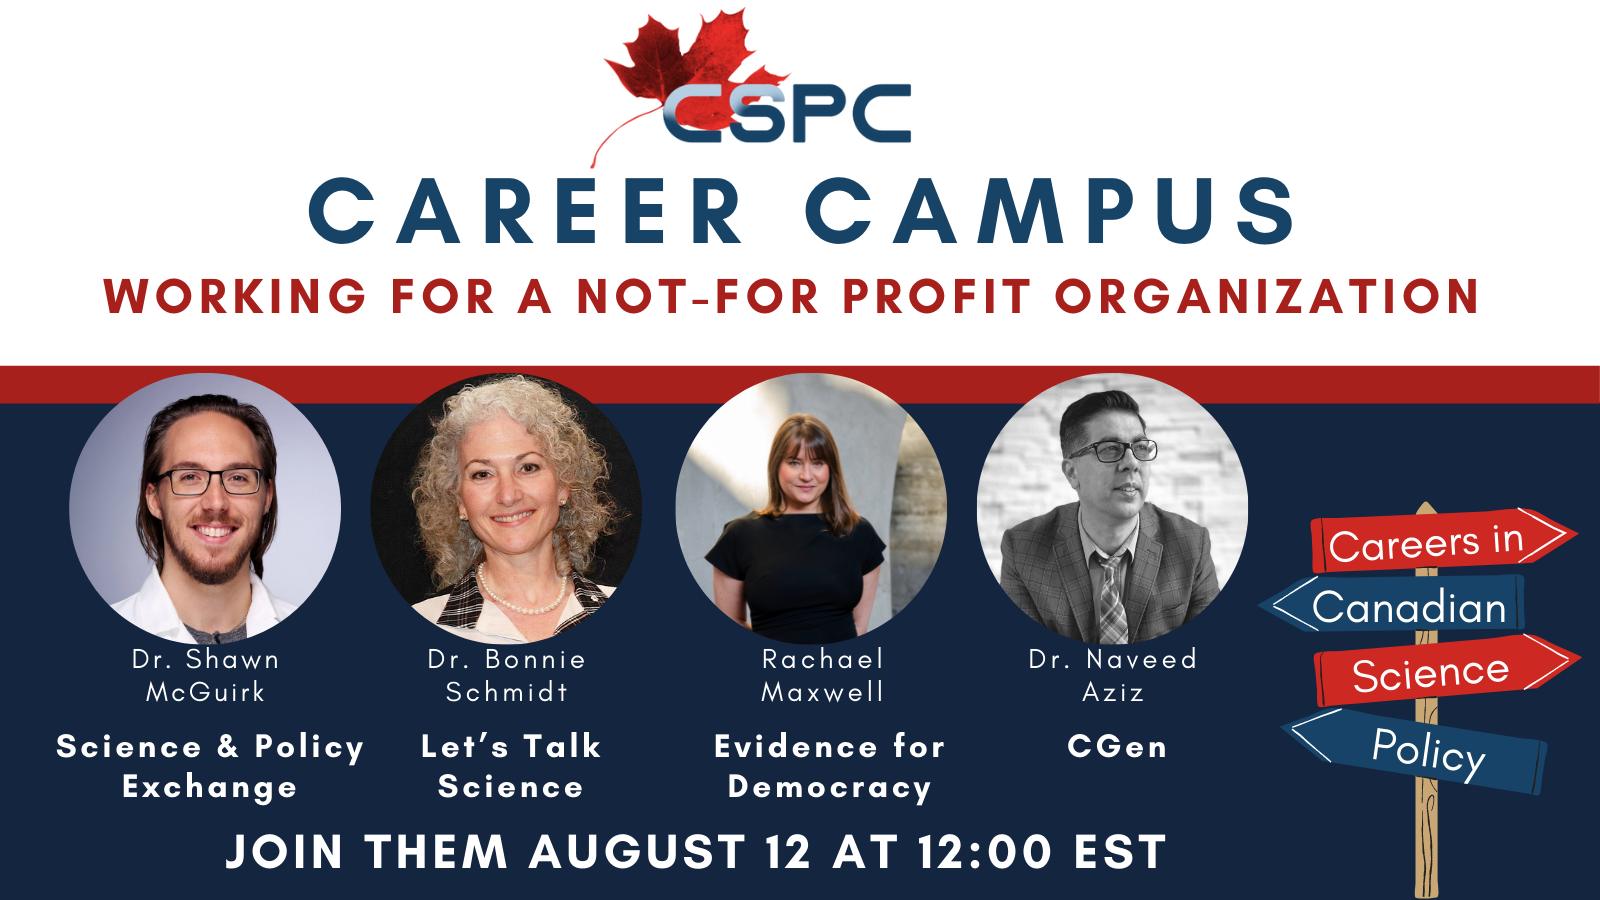 A banner for the career campus: working in not-for-profit organizations panel featuring a headshot of all of the panelists and their affiliations (listed in the text below)